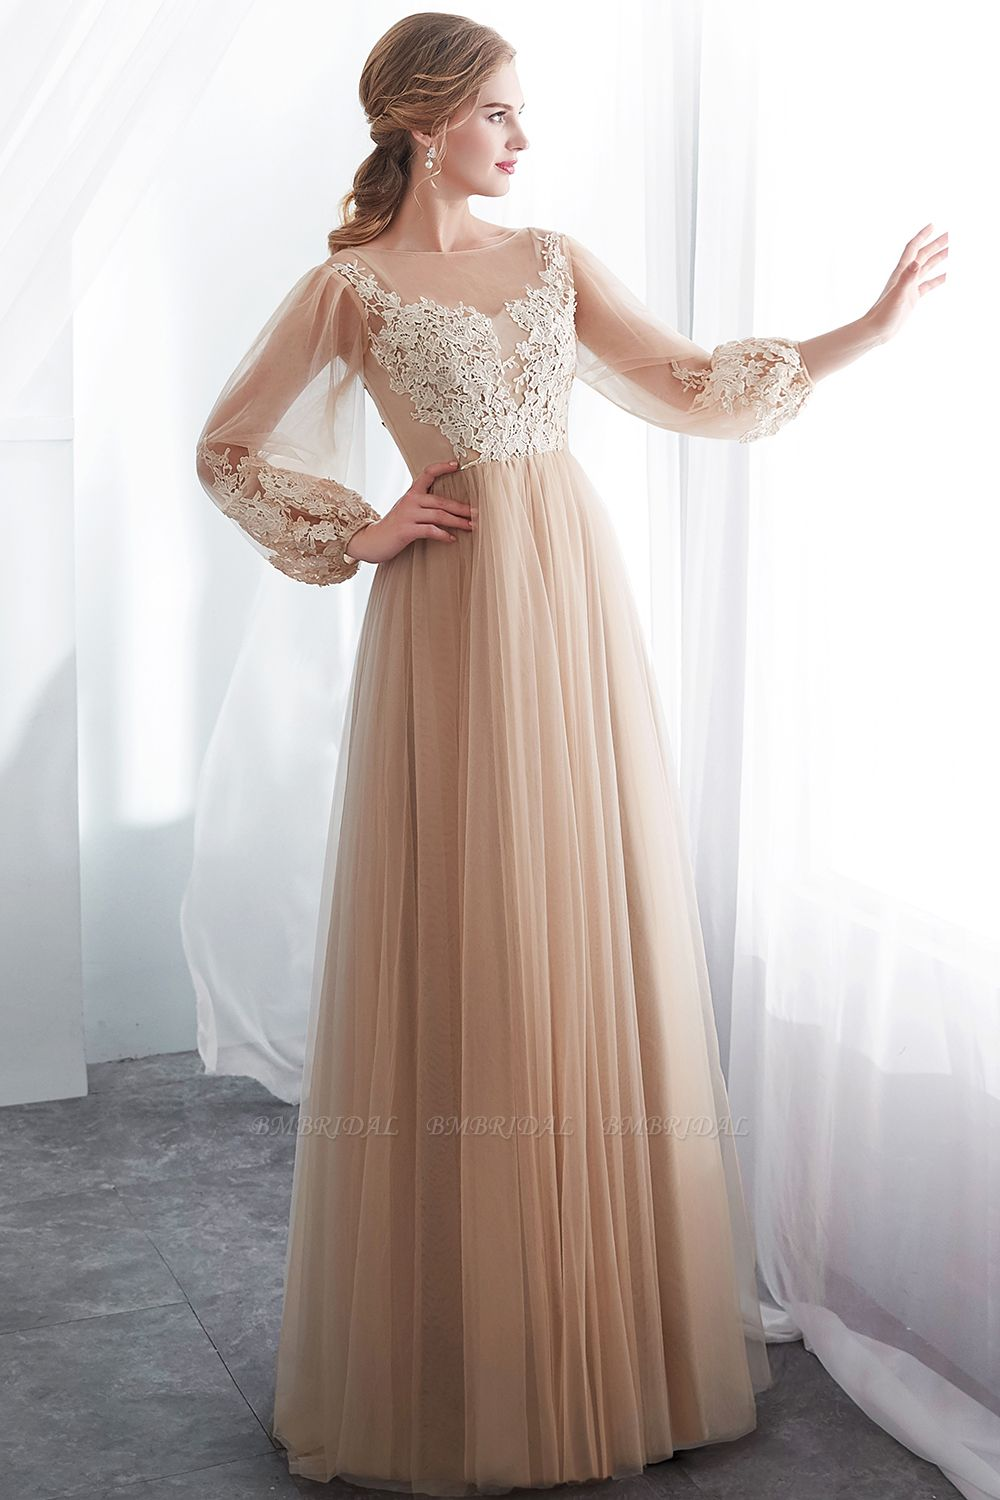 BMbridal Gorgeous Long Sleeve Tulle Prom Dress Long Evening Party Gowns With Appliques